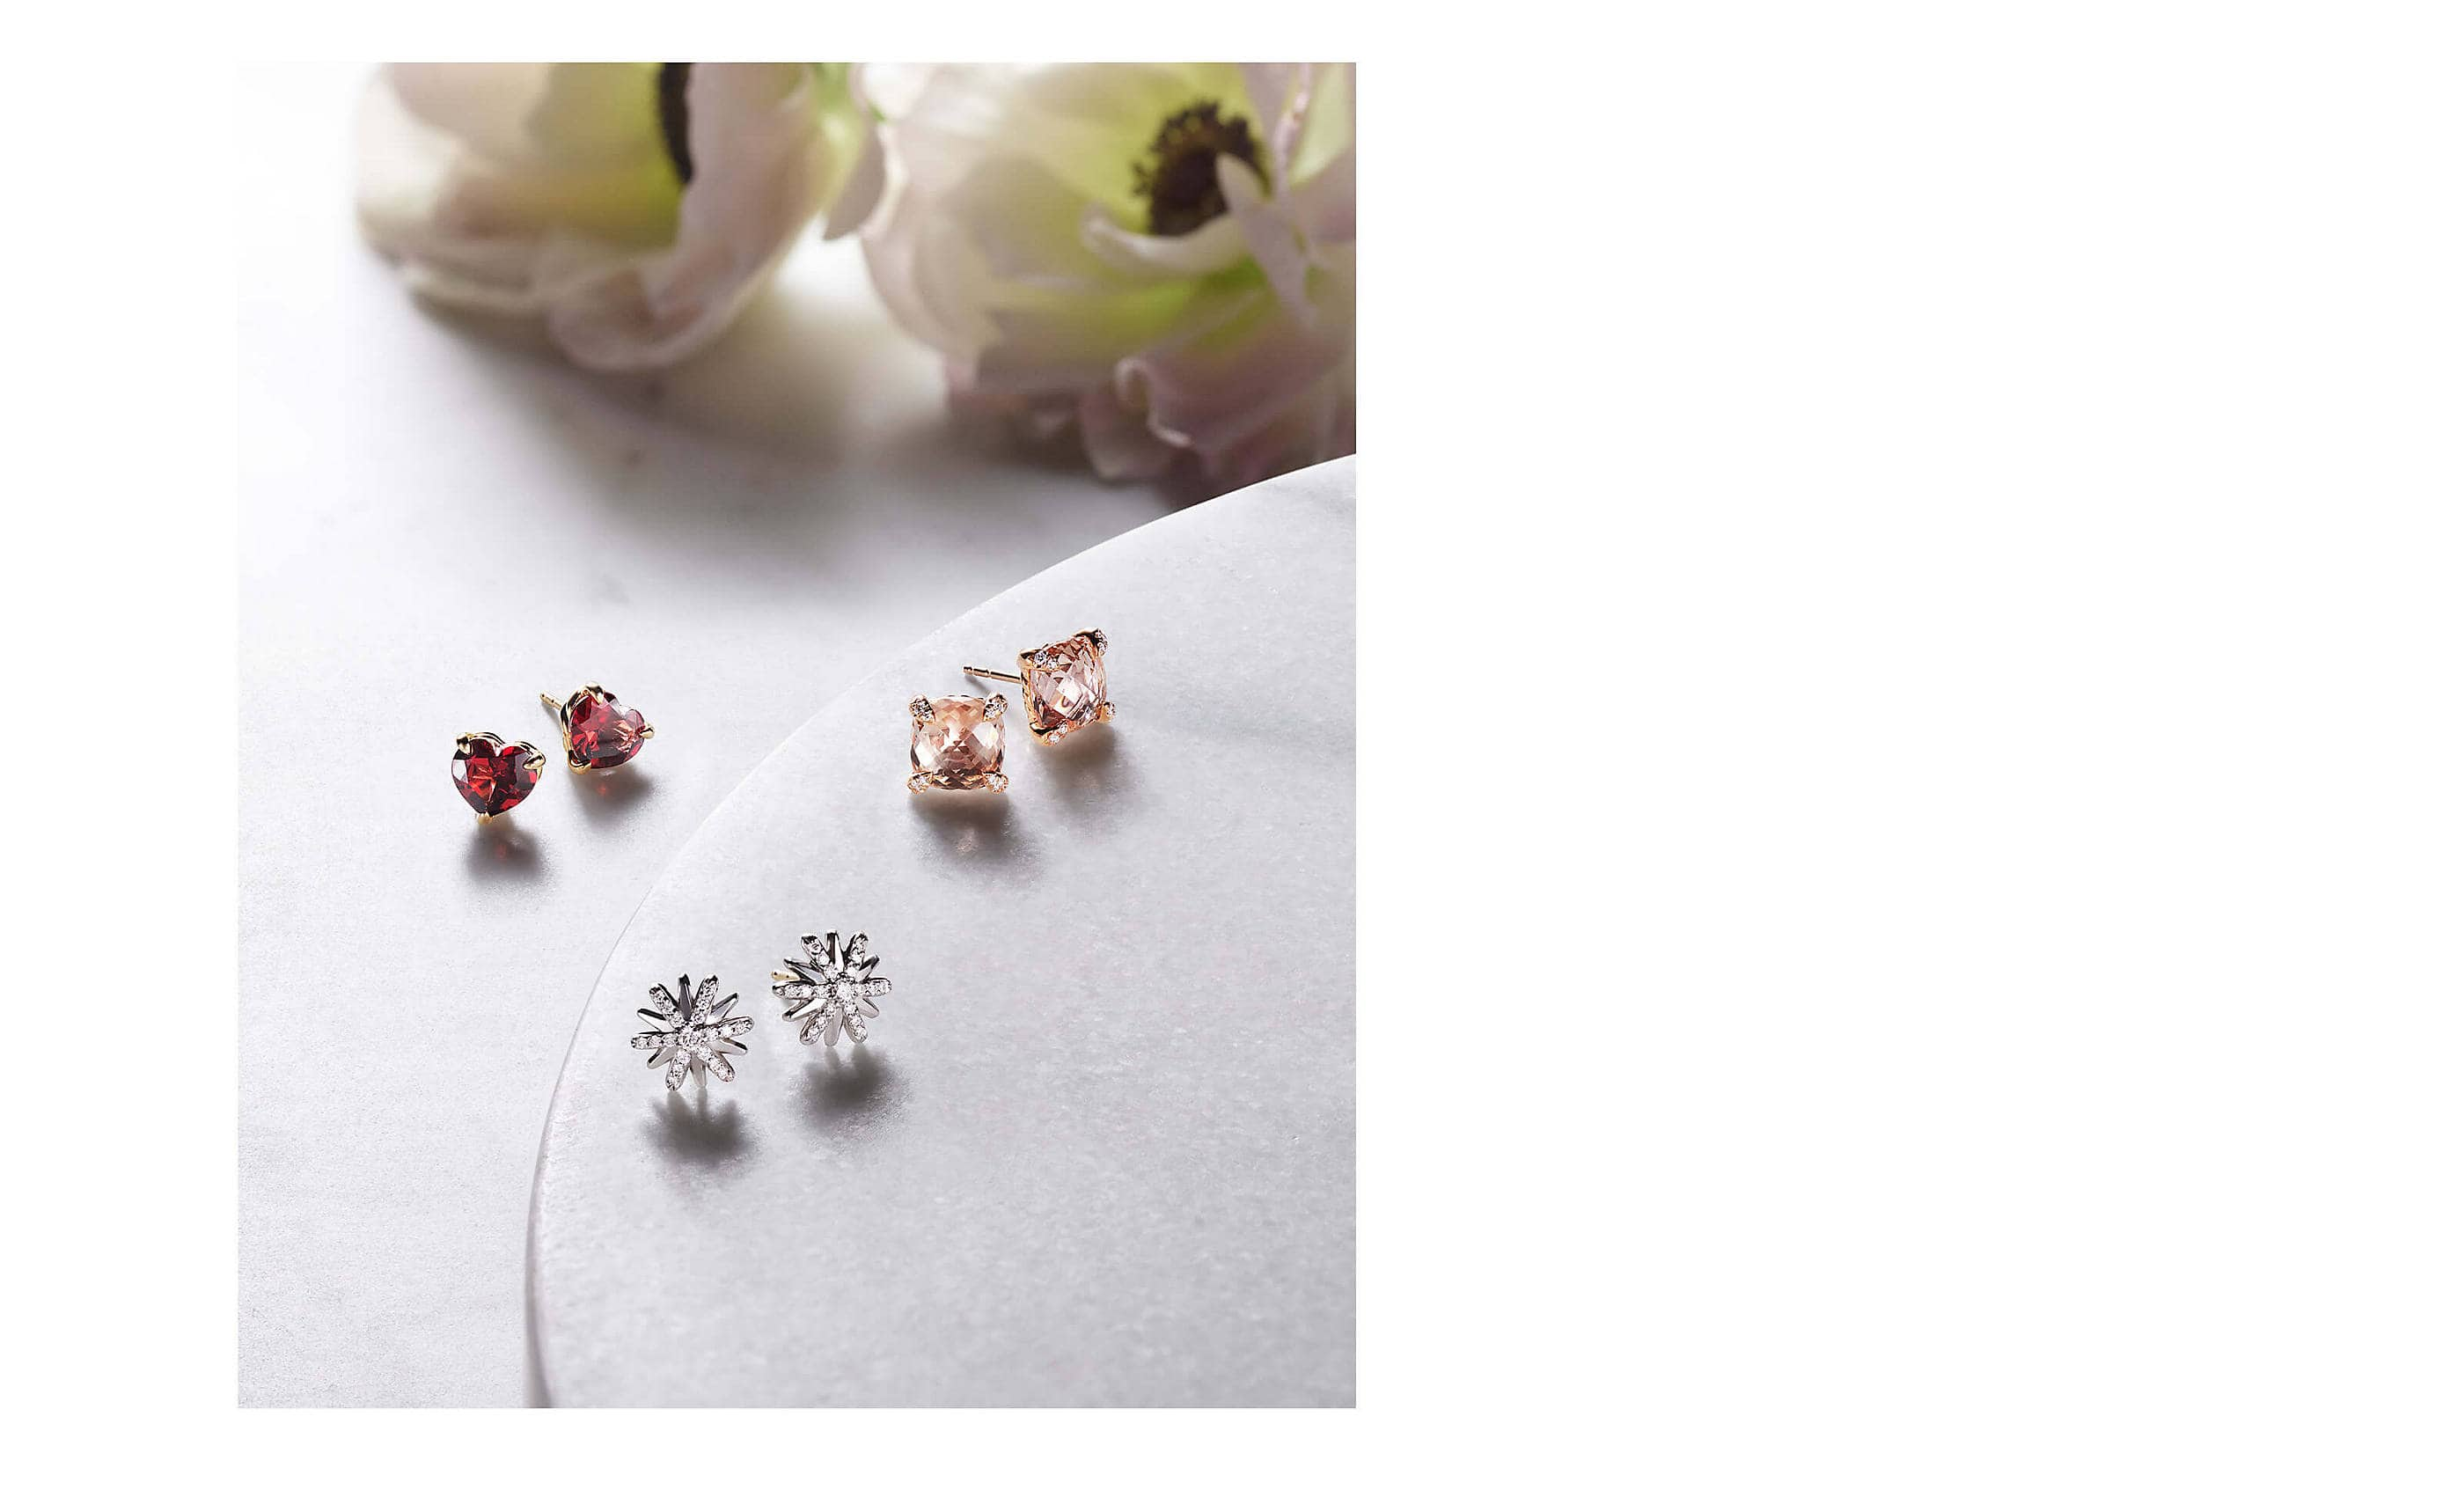 A color photo shows three pairs of David Yurman women's stud earrings scattered on a grey marble surface nearby two white-and-pink flowers. One pair is crafted from 18K yellow gold with heart-shaped garnet, one pair is star shaped and crafted from 18K white gold with pavé diamonds. The last pair is crafted from 18K yellow gold with cushion-shaped morganite.